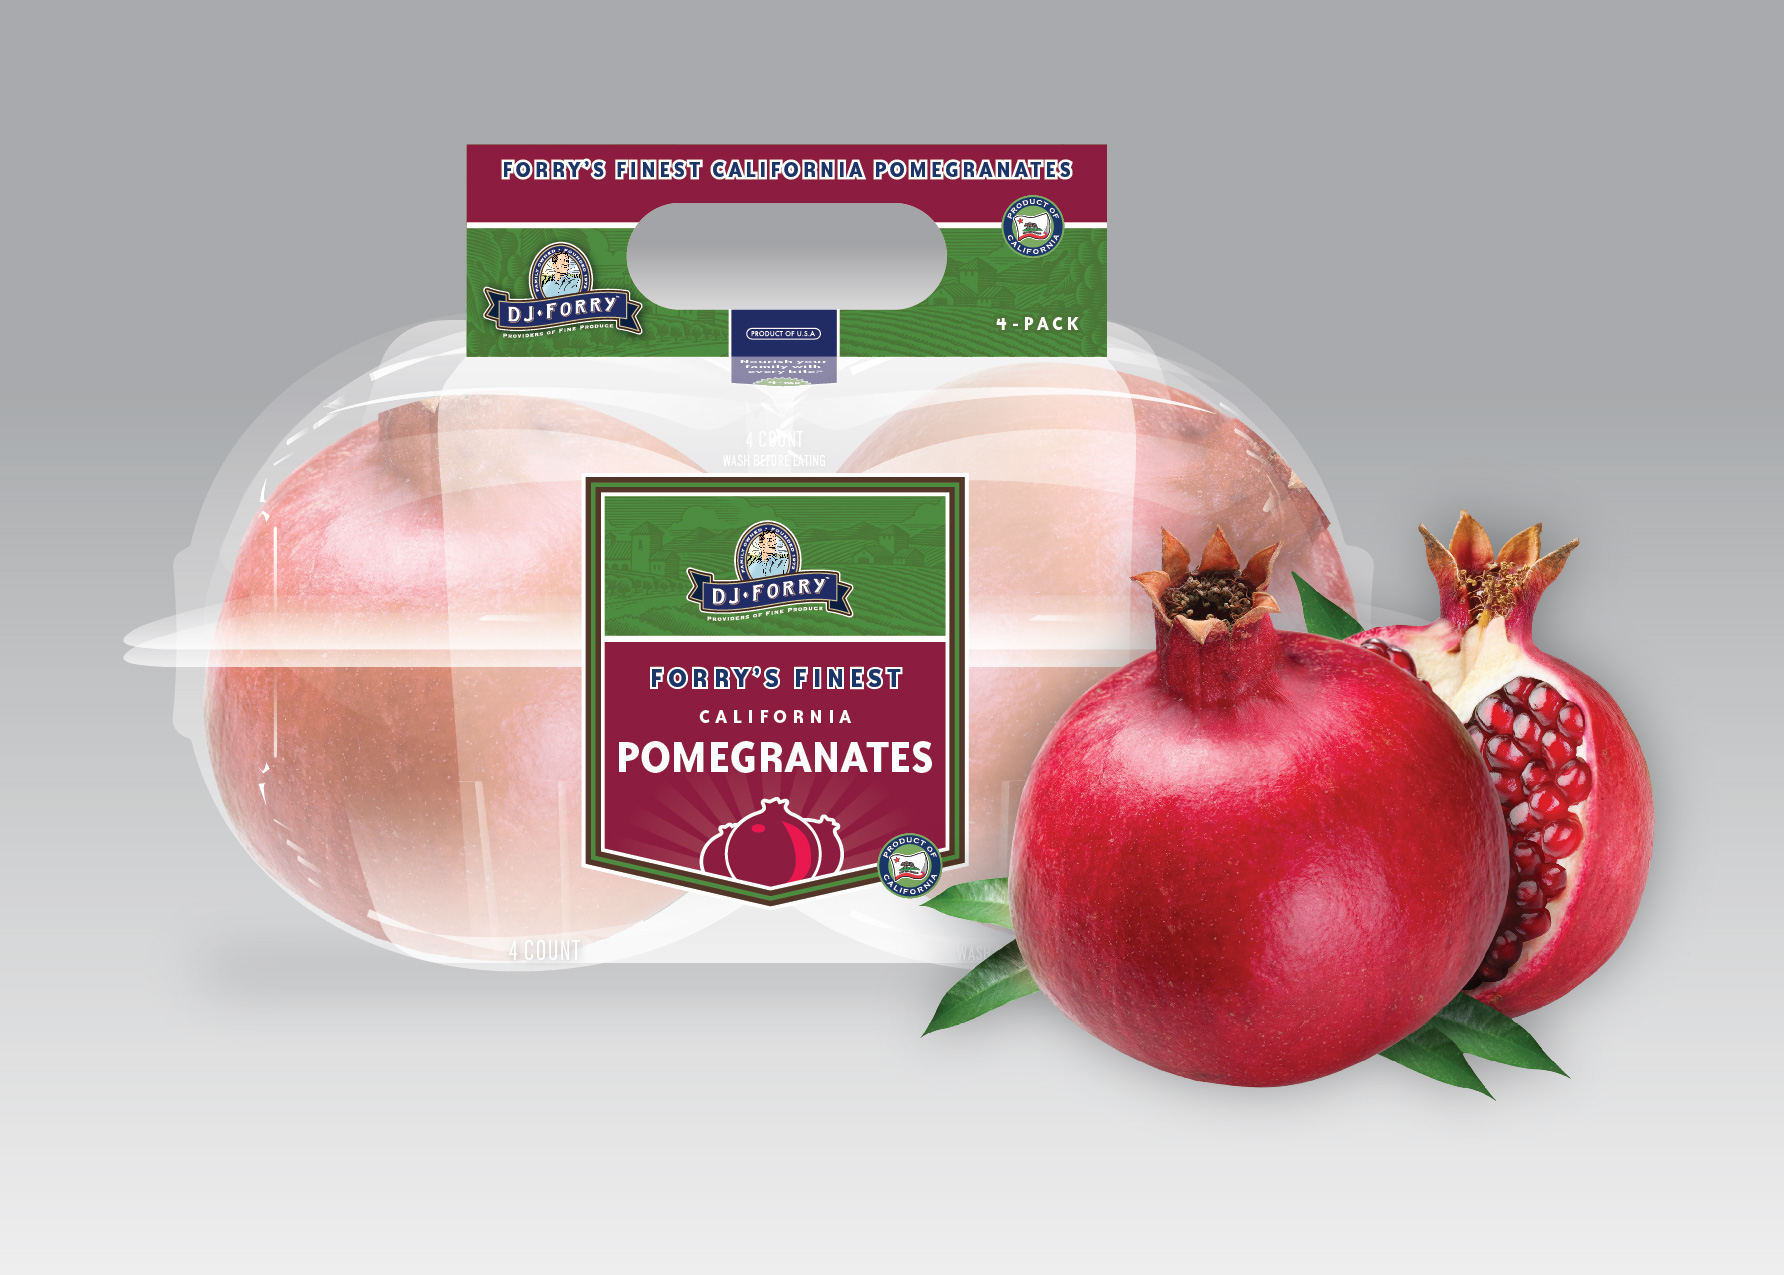 4PackPomegranate3D-03